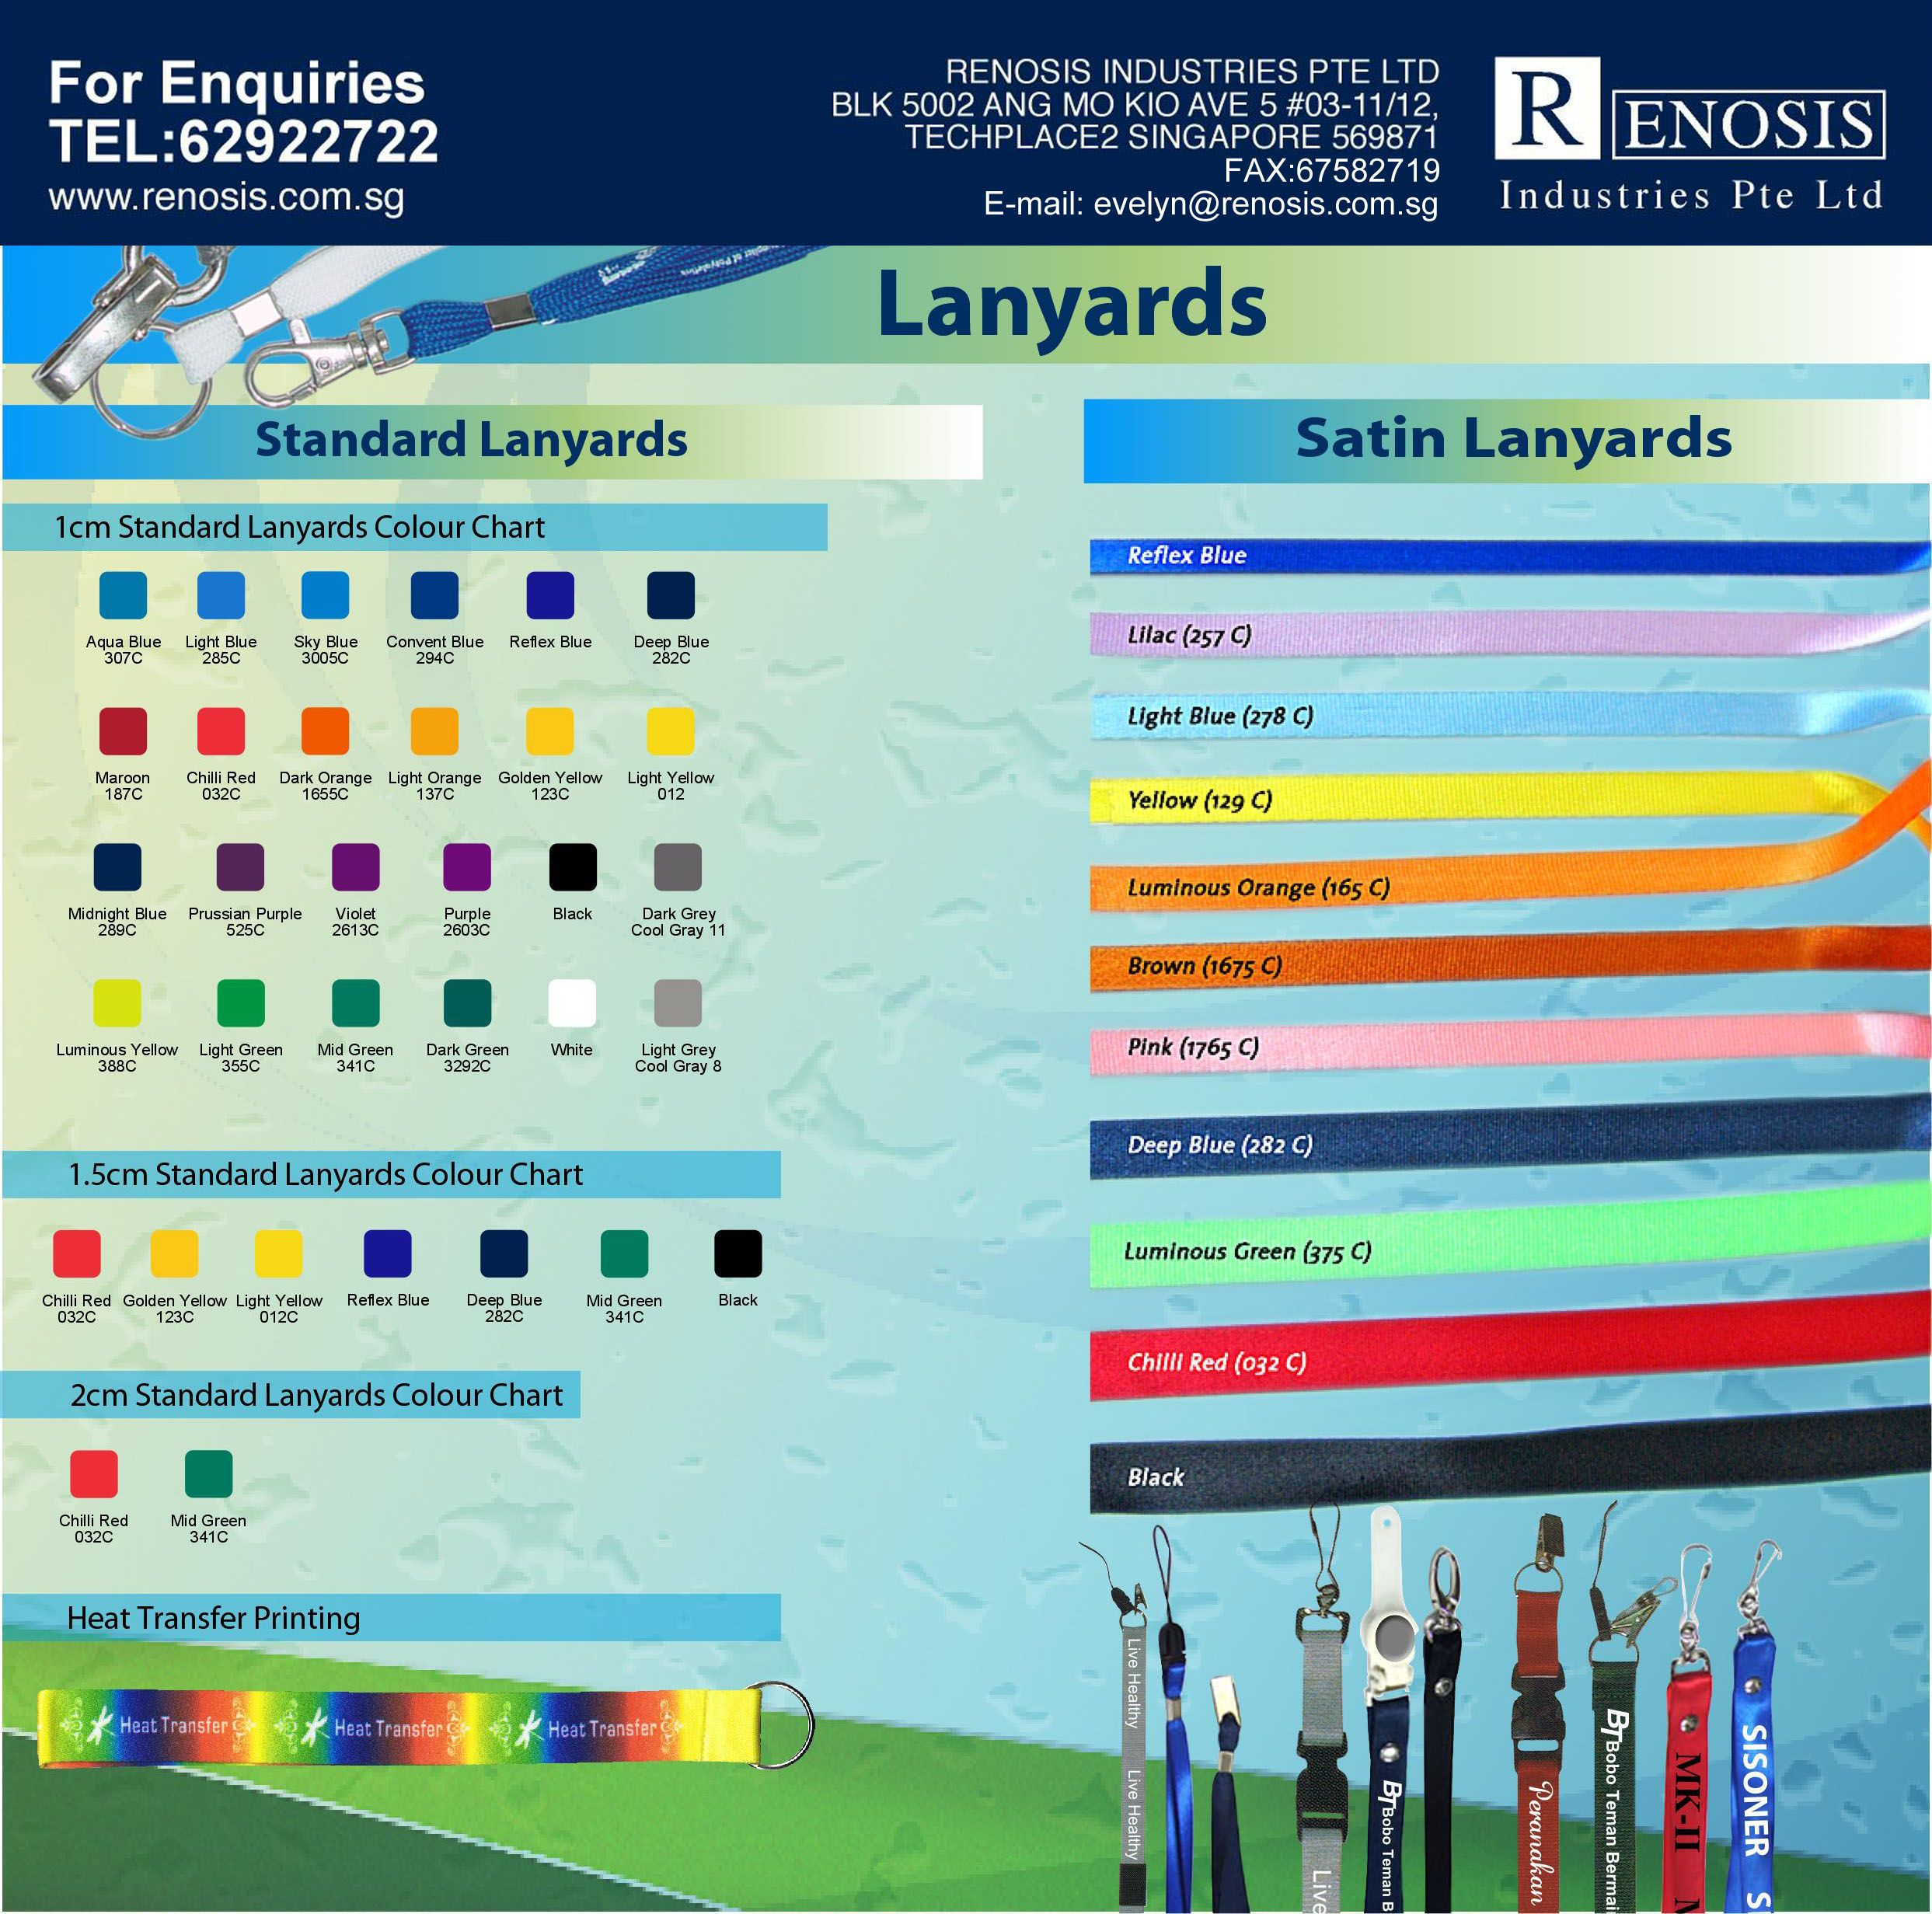 Cheap lanyards supplier in singapore more infohttps